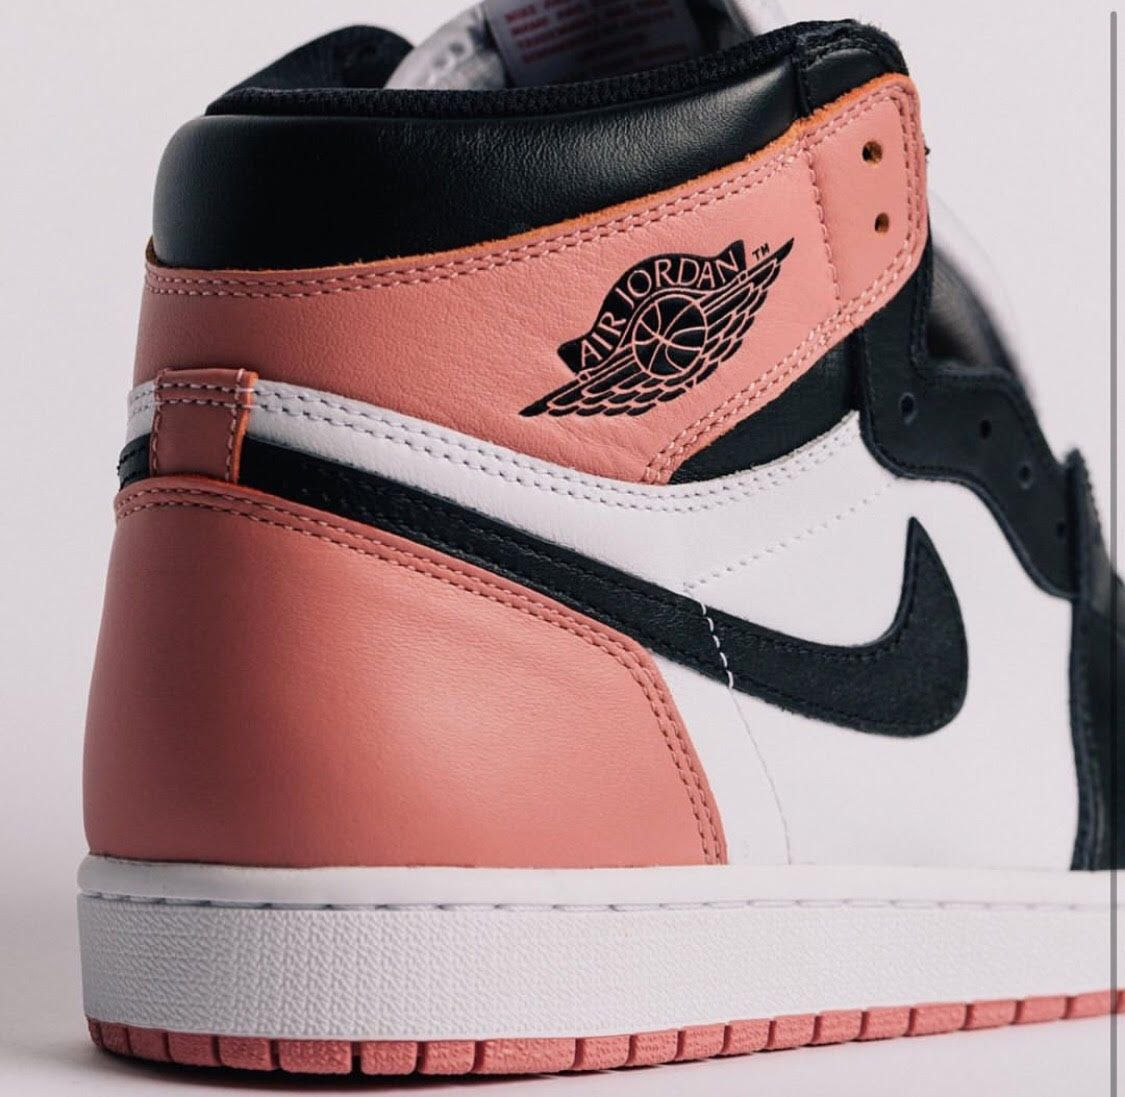 More Images Of The Upcoming Air Jordan 1 Retro High OG NRG Rust Pink d6c15215c